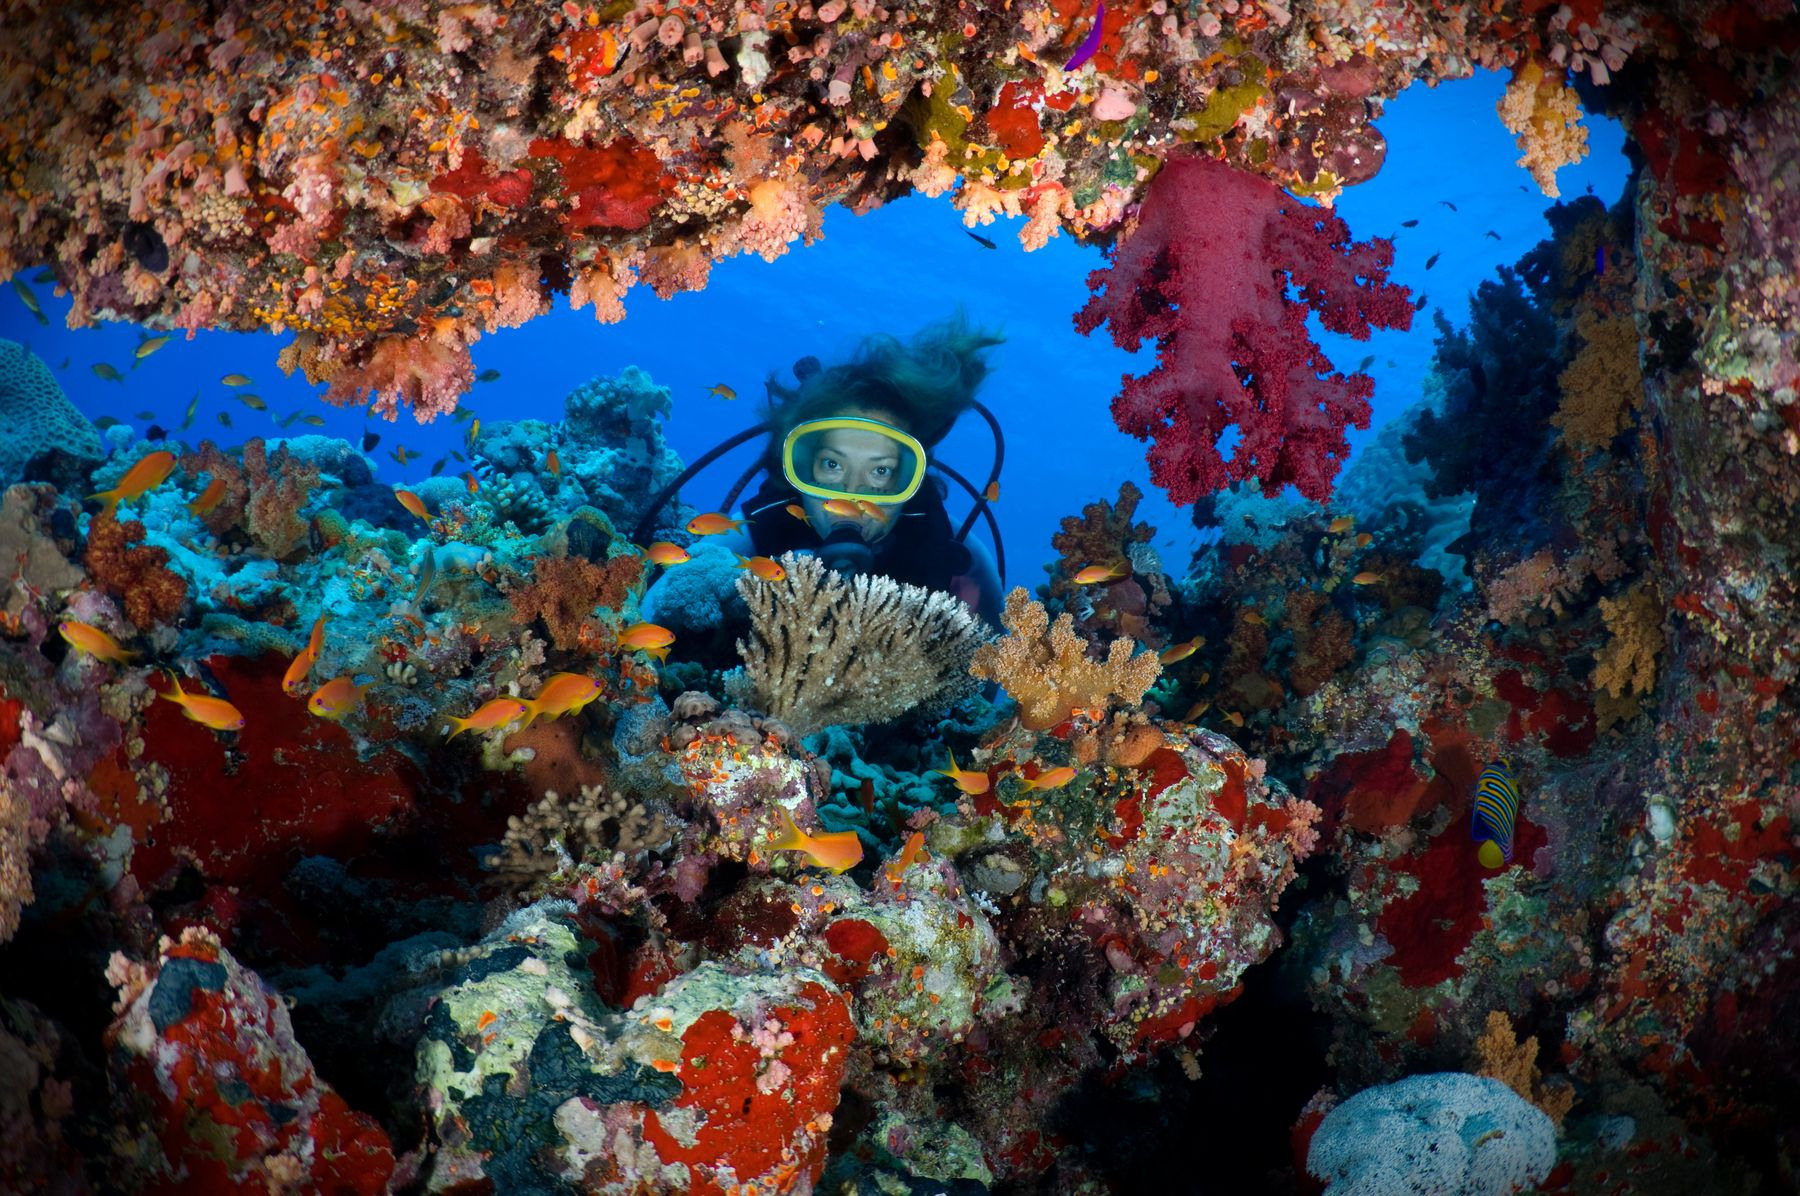 Diver in between colorful coral